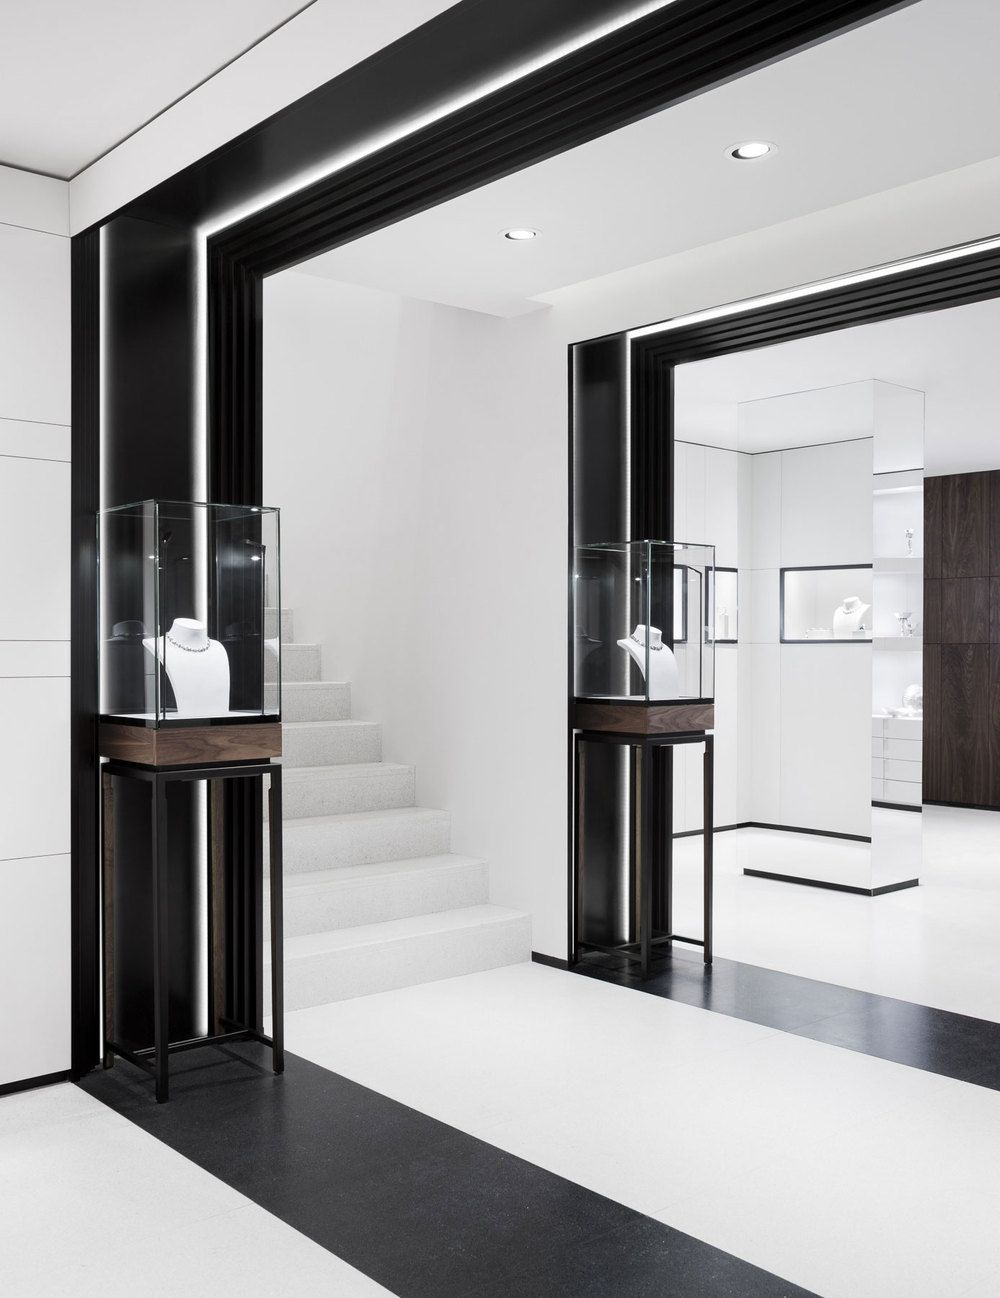 David thulstrup designs symmetrical space for georg jensen for Interior design blogs